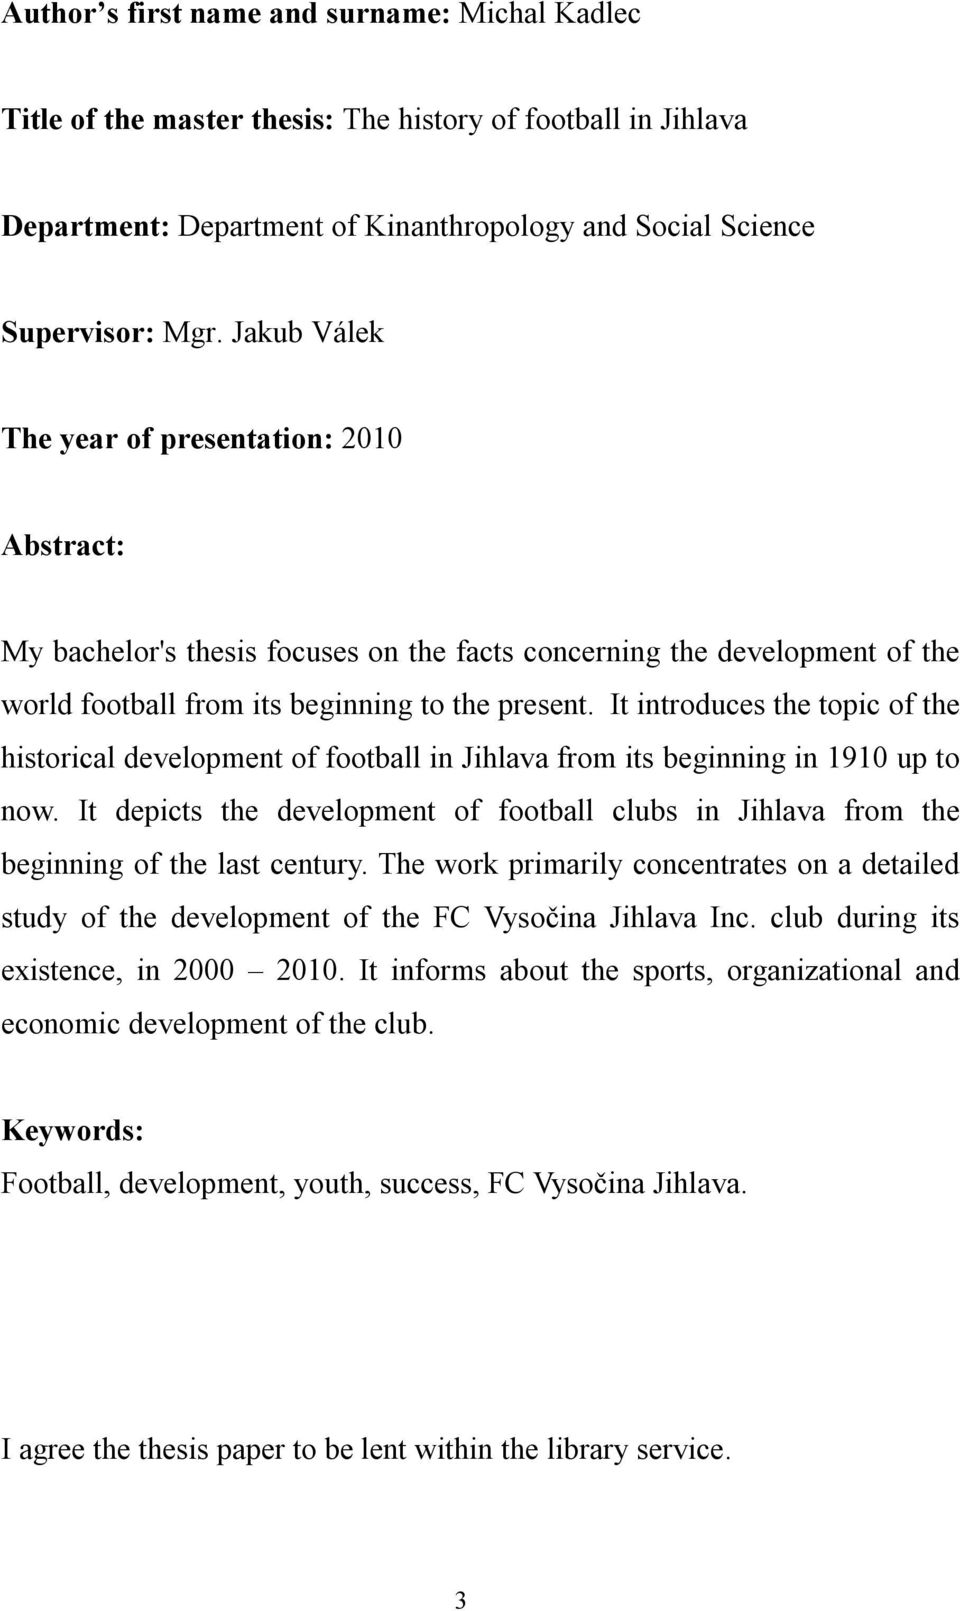 It introduces the topic of the historical development of football in Jihlava from its beginning in 1910 up to now.